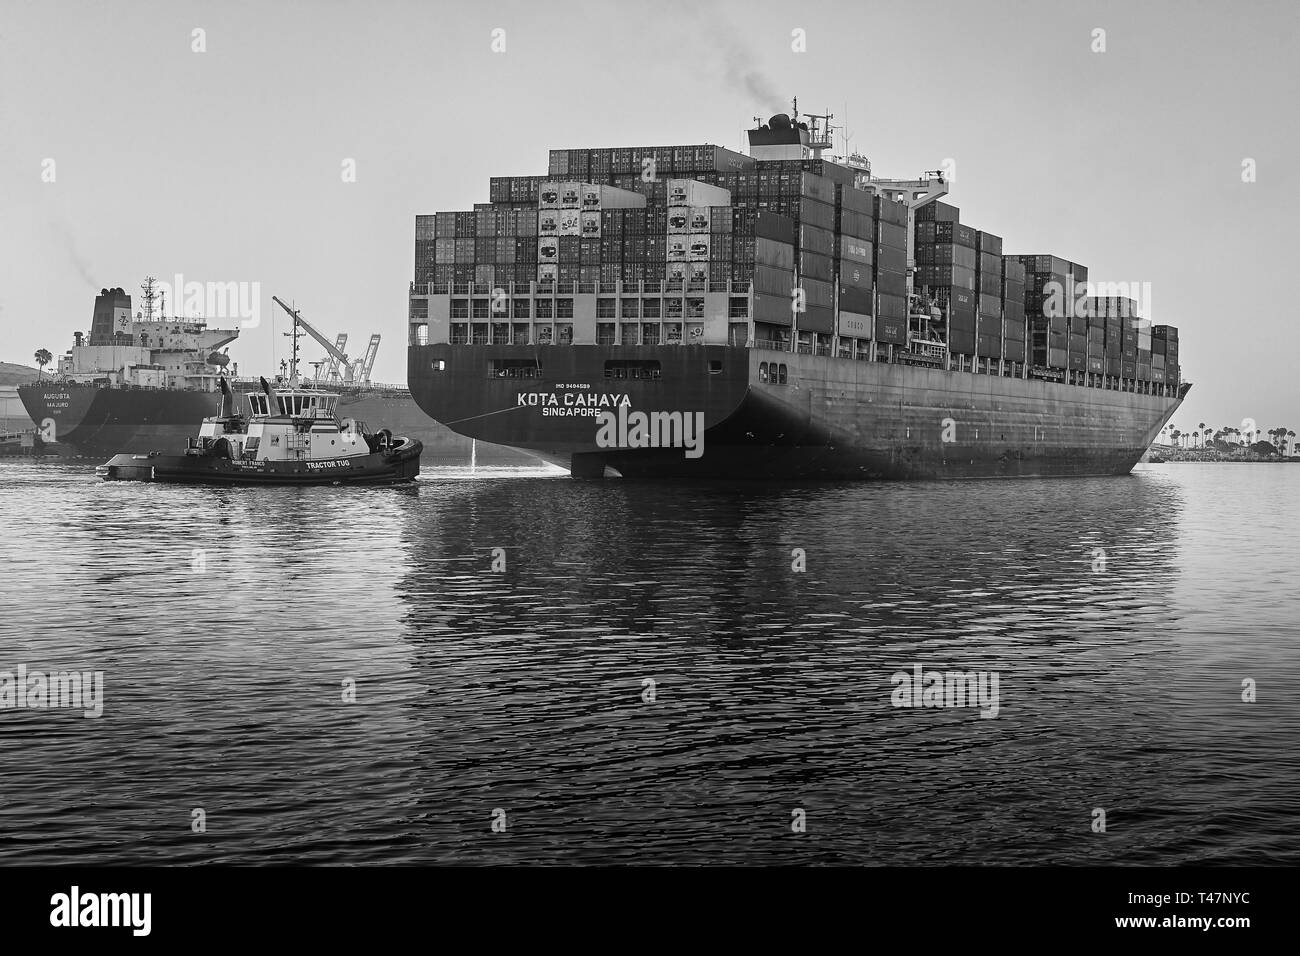 Container Ship, KOTA CAHAYA, Underway Through The Narrow Los Angeles Main Channel As She Departs The Port Of Los Angeles, California, USA. - Stock Image